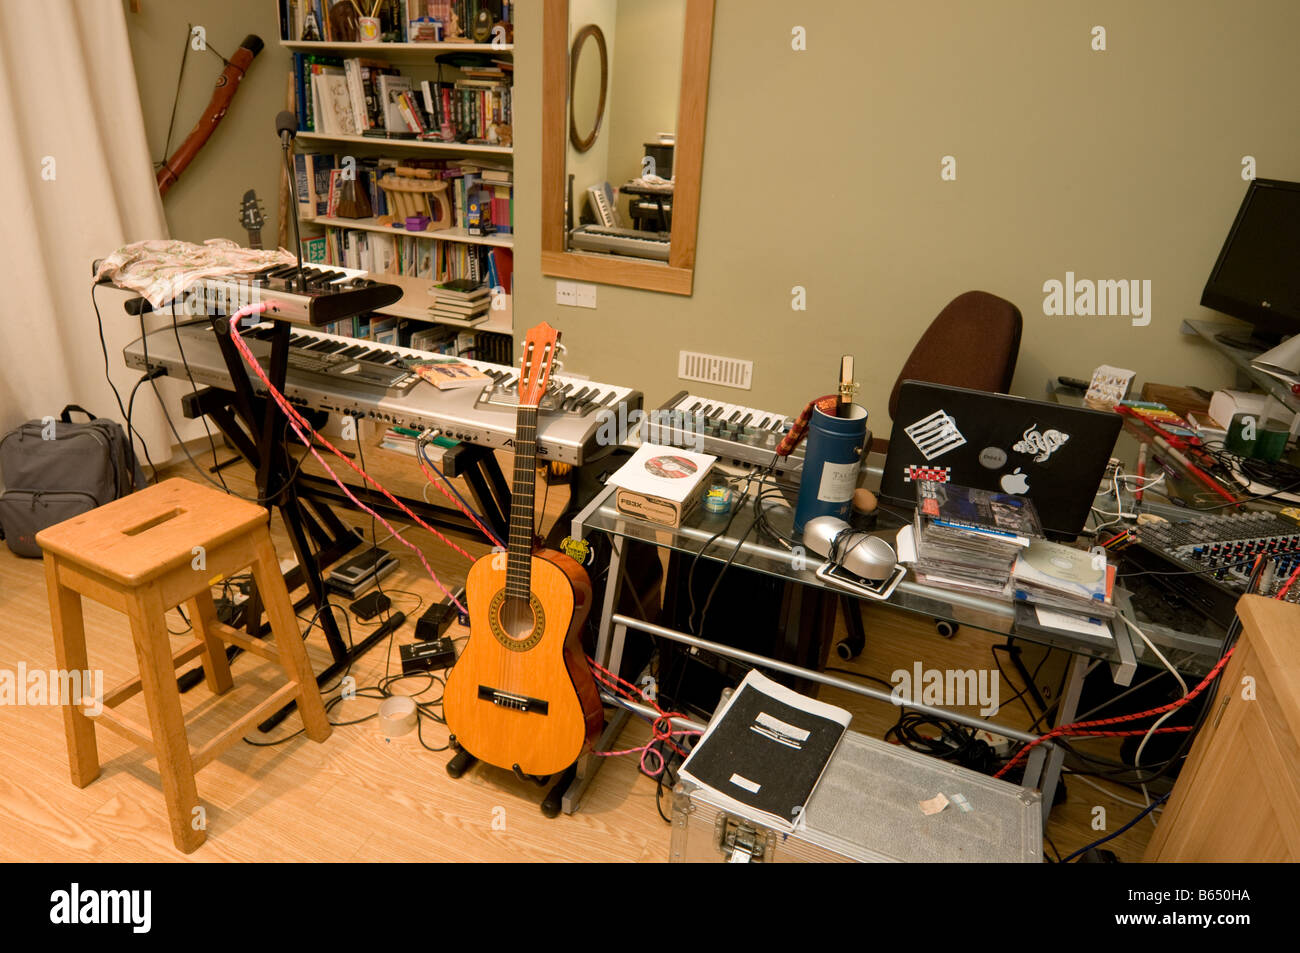 teenage boy musician music room and home recording studio full of stock photo 21008550 alamy. Black Bedroom Furniture Sets. Home Design Ideas